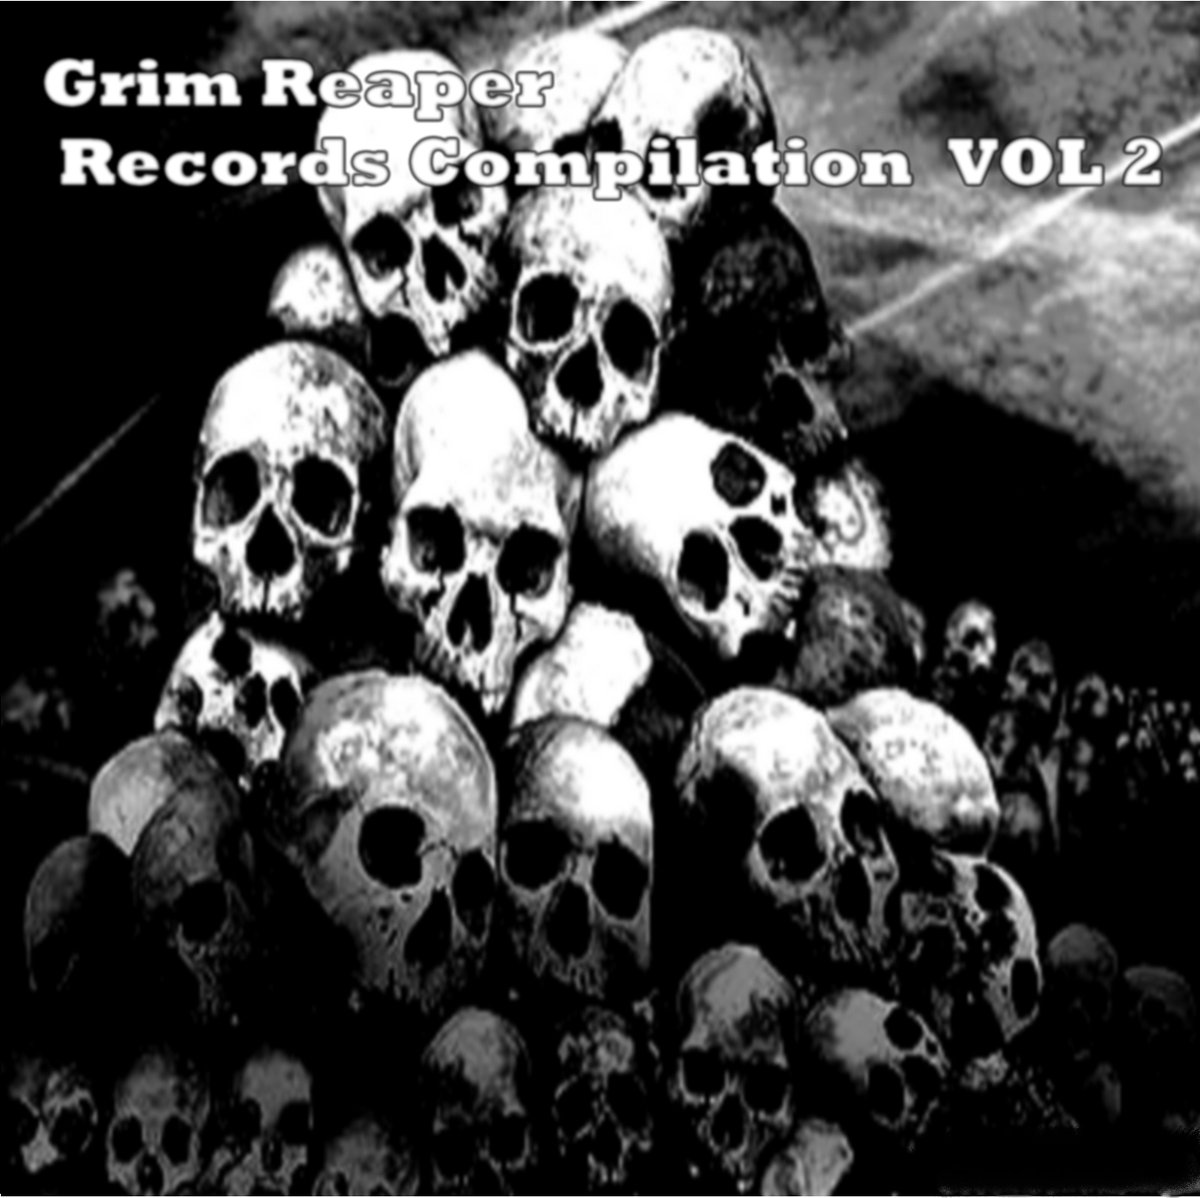 Grim Reaper Records Compilation 2